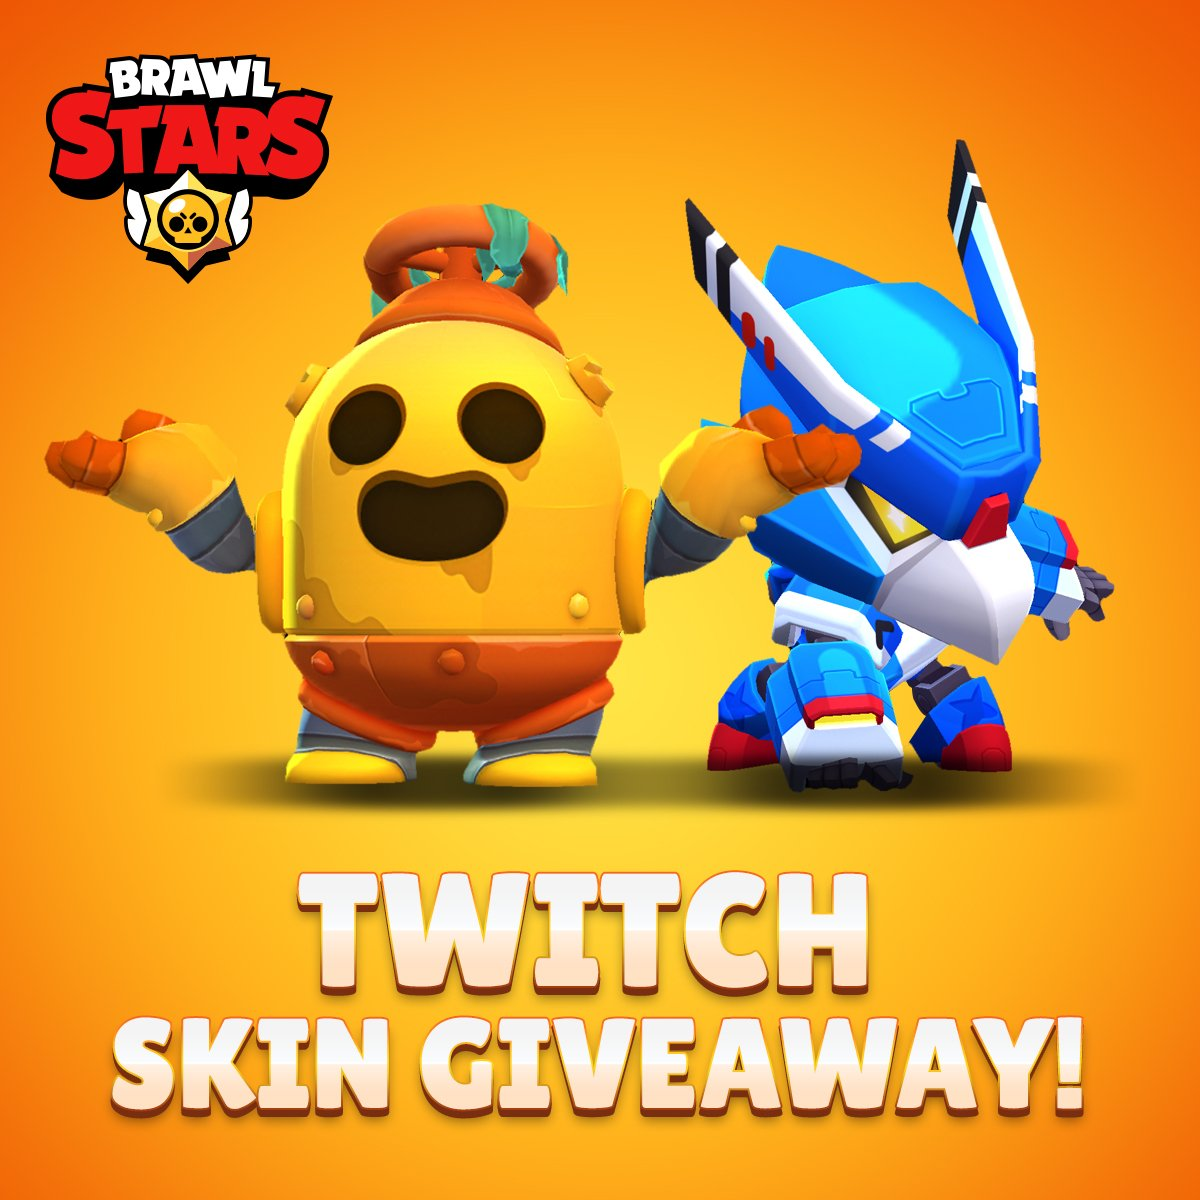 Brawl Stars On Twitter 32 Streamers Are Giving Away 1 Robo